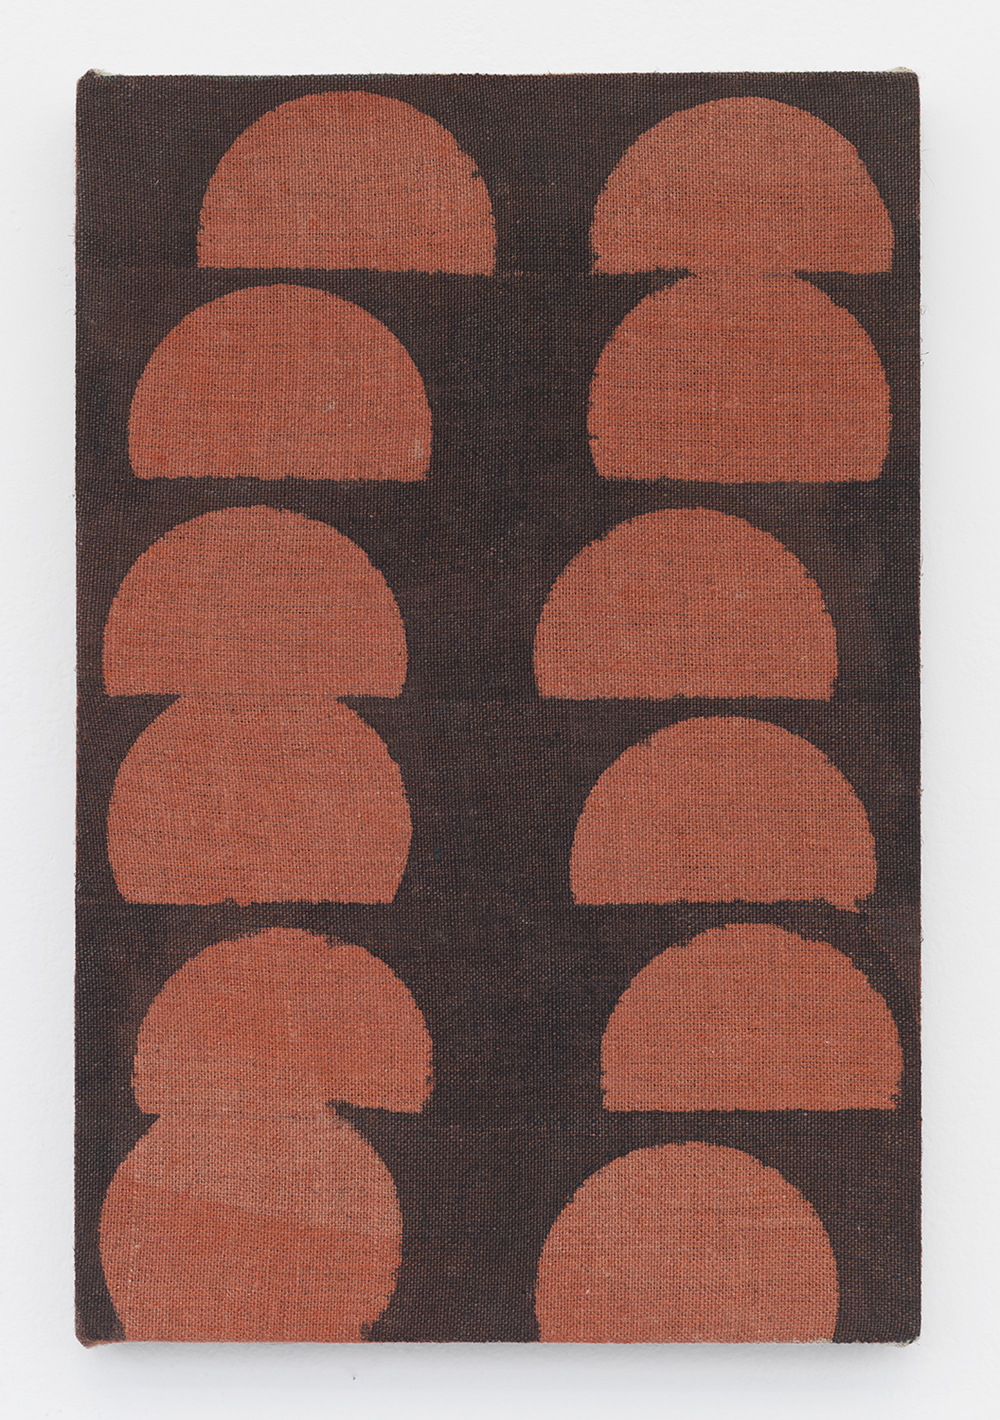 Red Rise (Bean Can) 2014 Acrylic and India ink on linen 12 x 8 inches